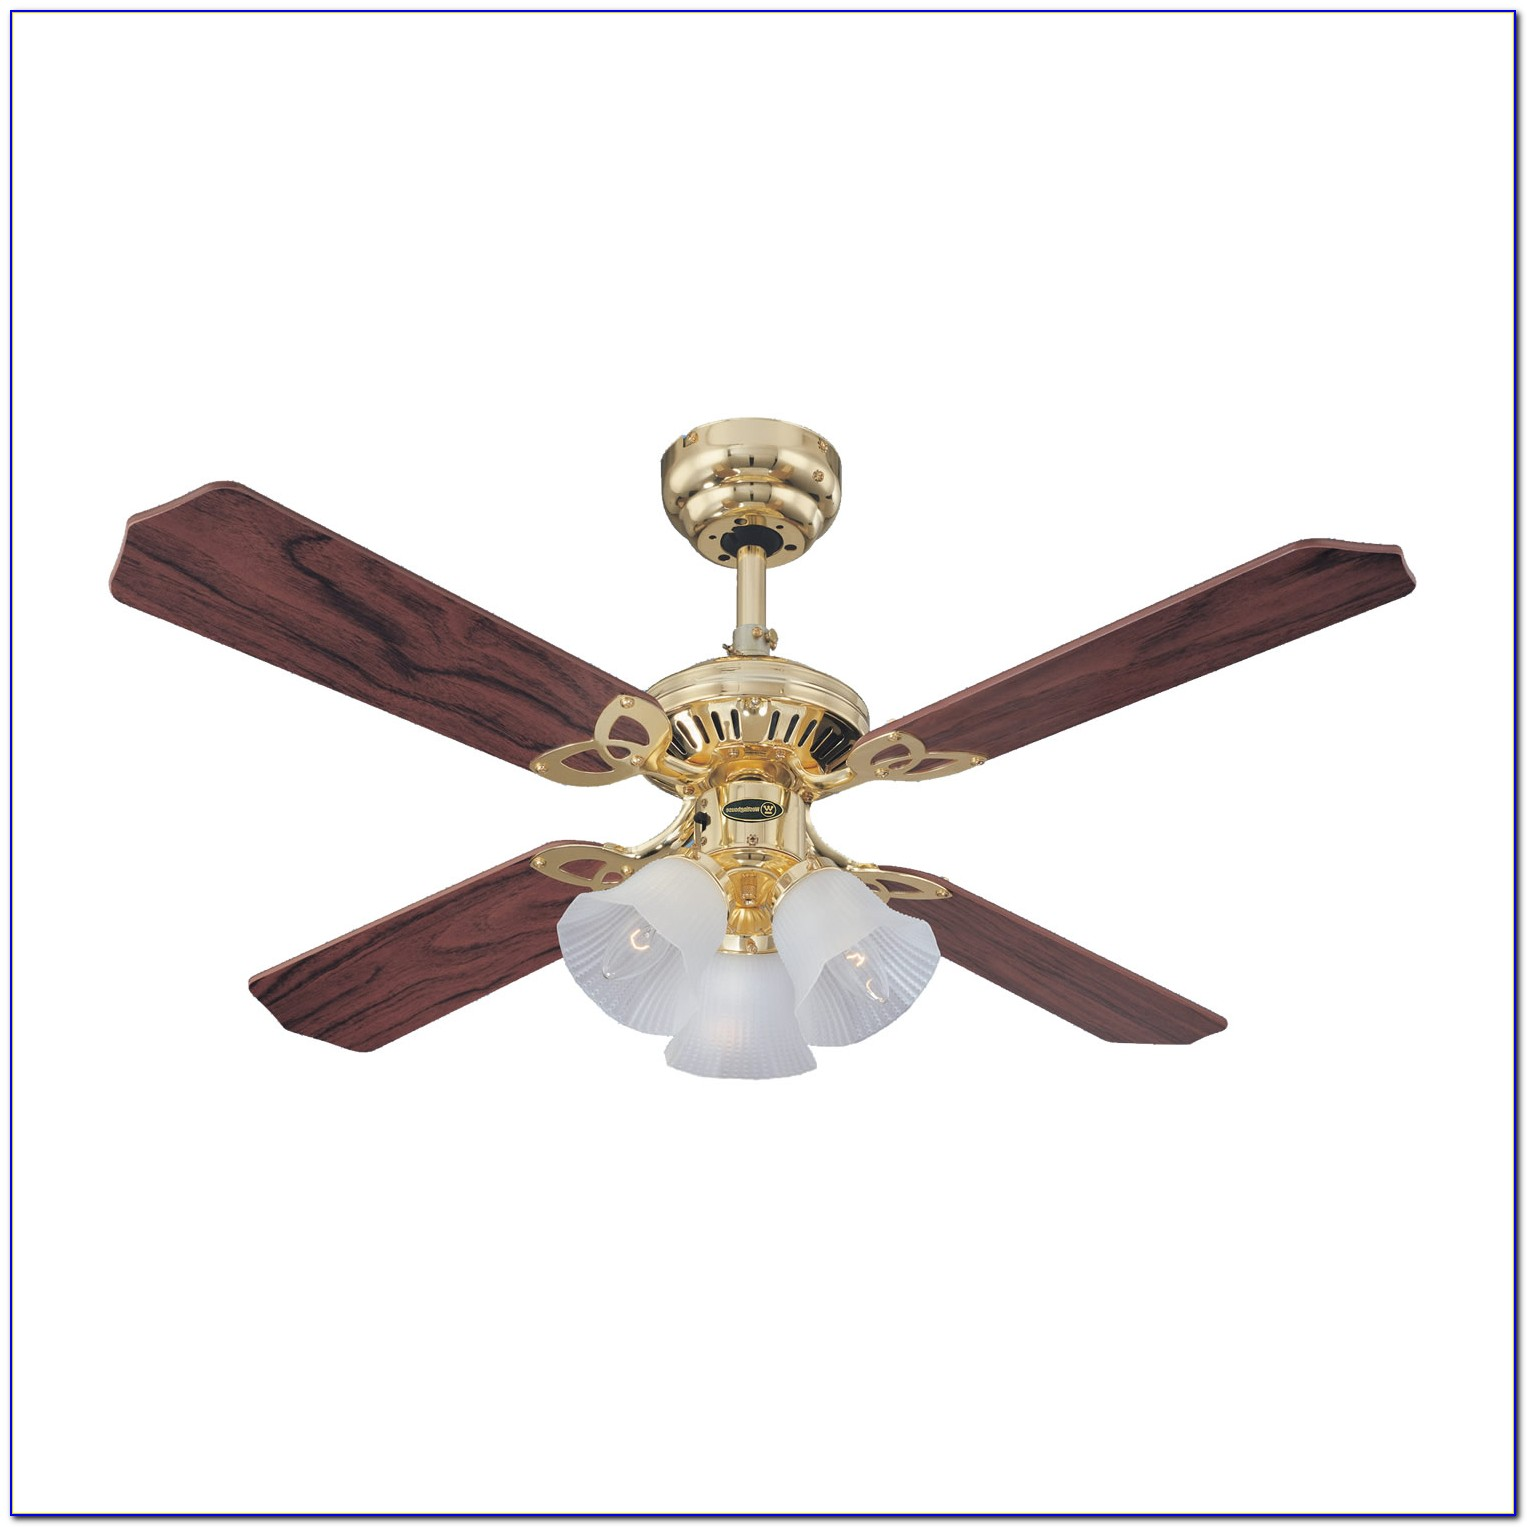 Brass Ceiling Fan Light Kit